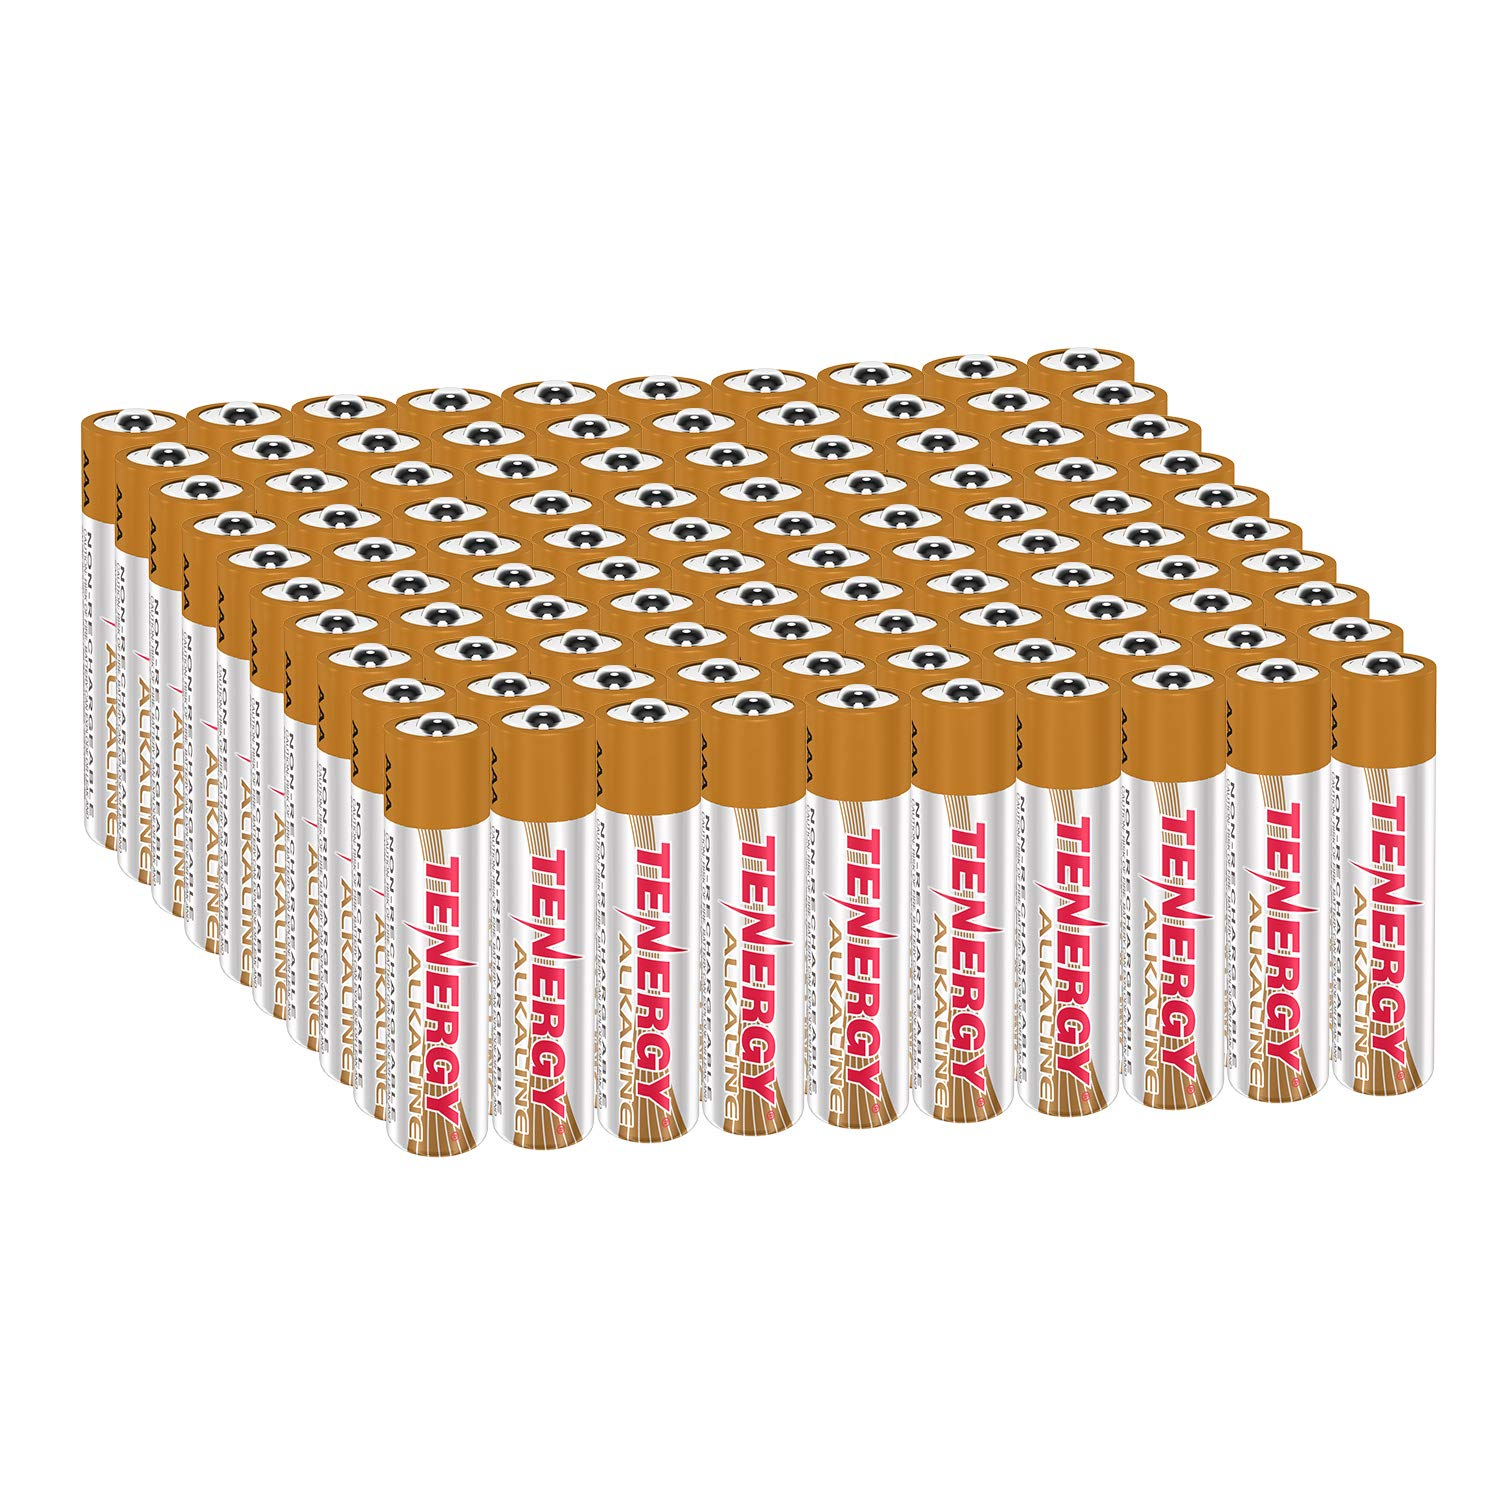 Tenergy 1.5V AAA Alkaline Battery, High Performance AAA Non-Rechargeable Batteries for Clocks, Remotes, Toys & Electronic Devices, Replacement AAA Cell Batteries, 100 Pack